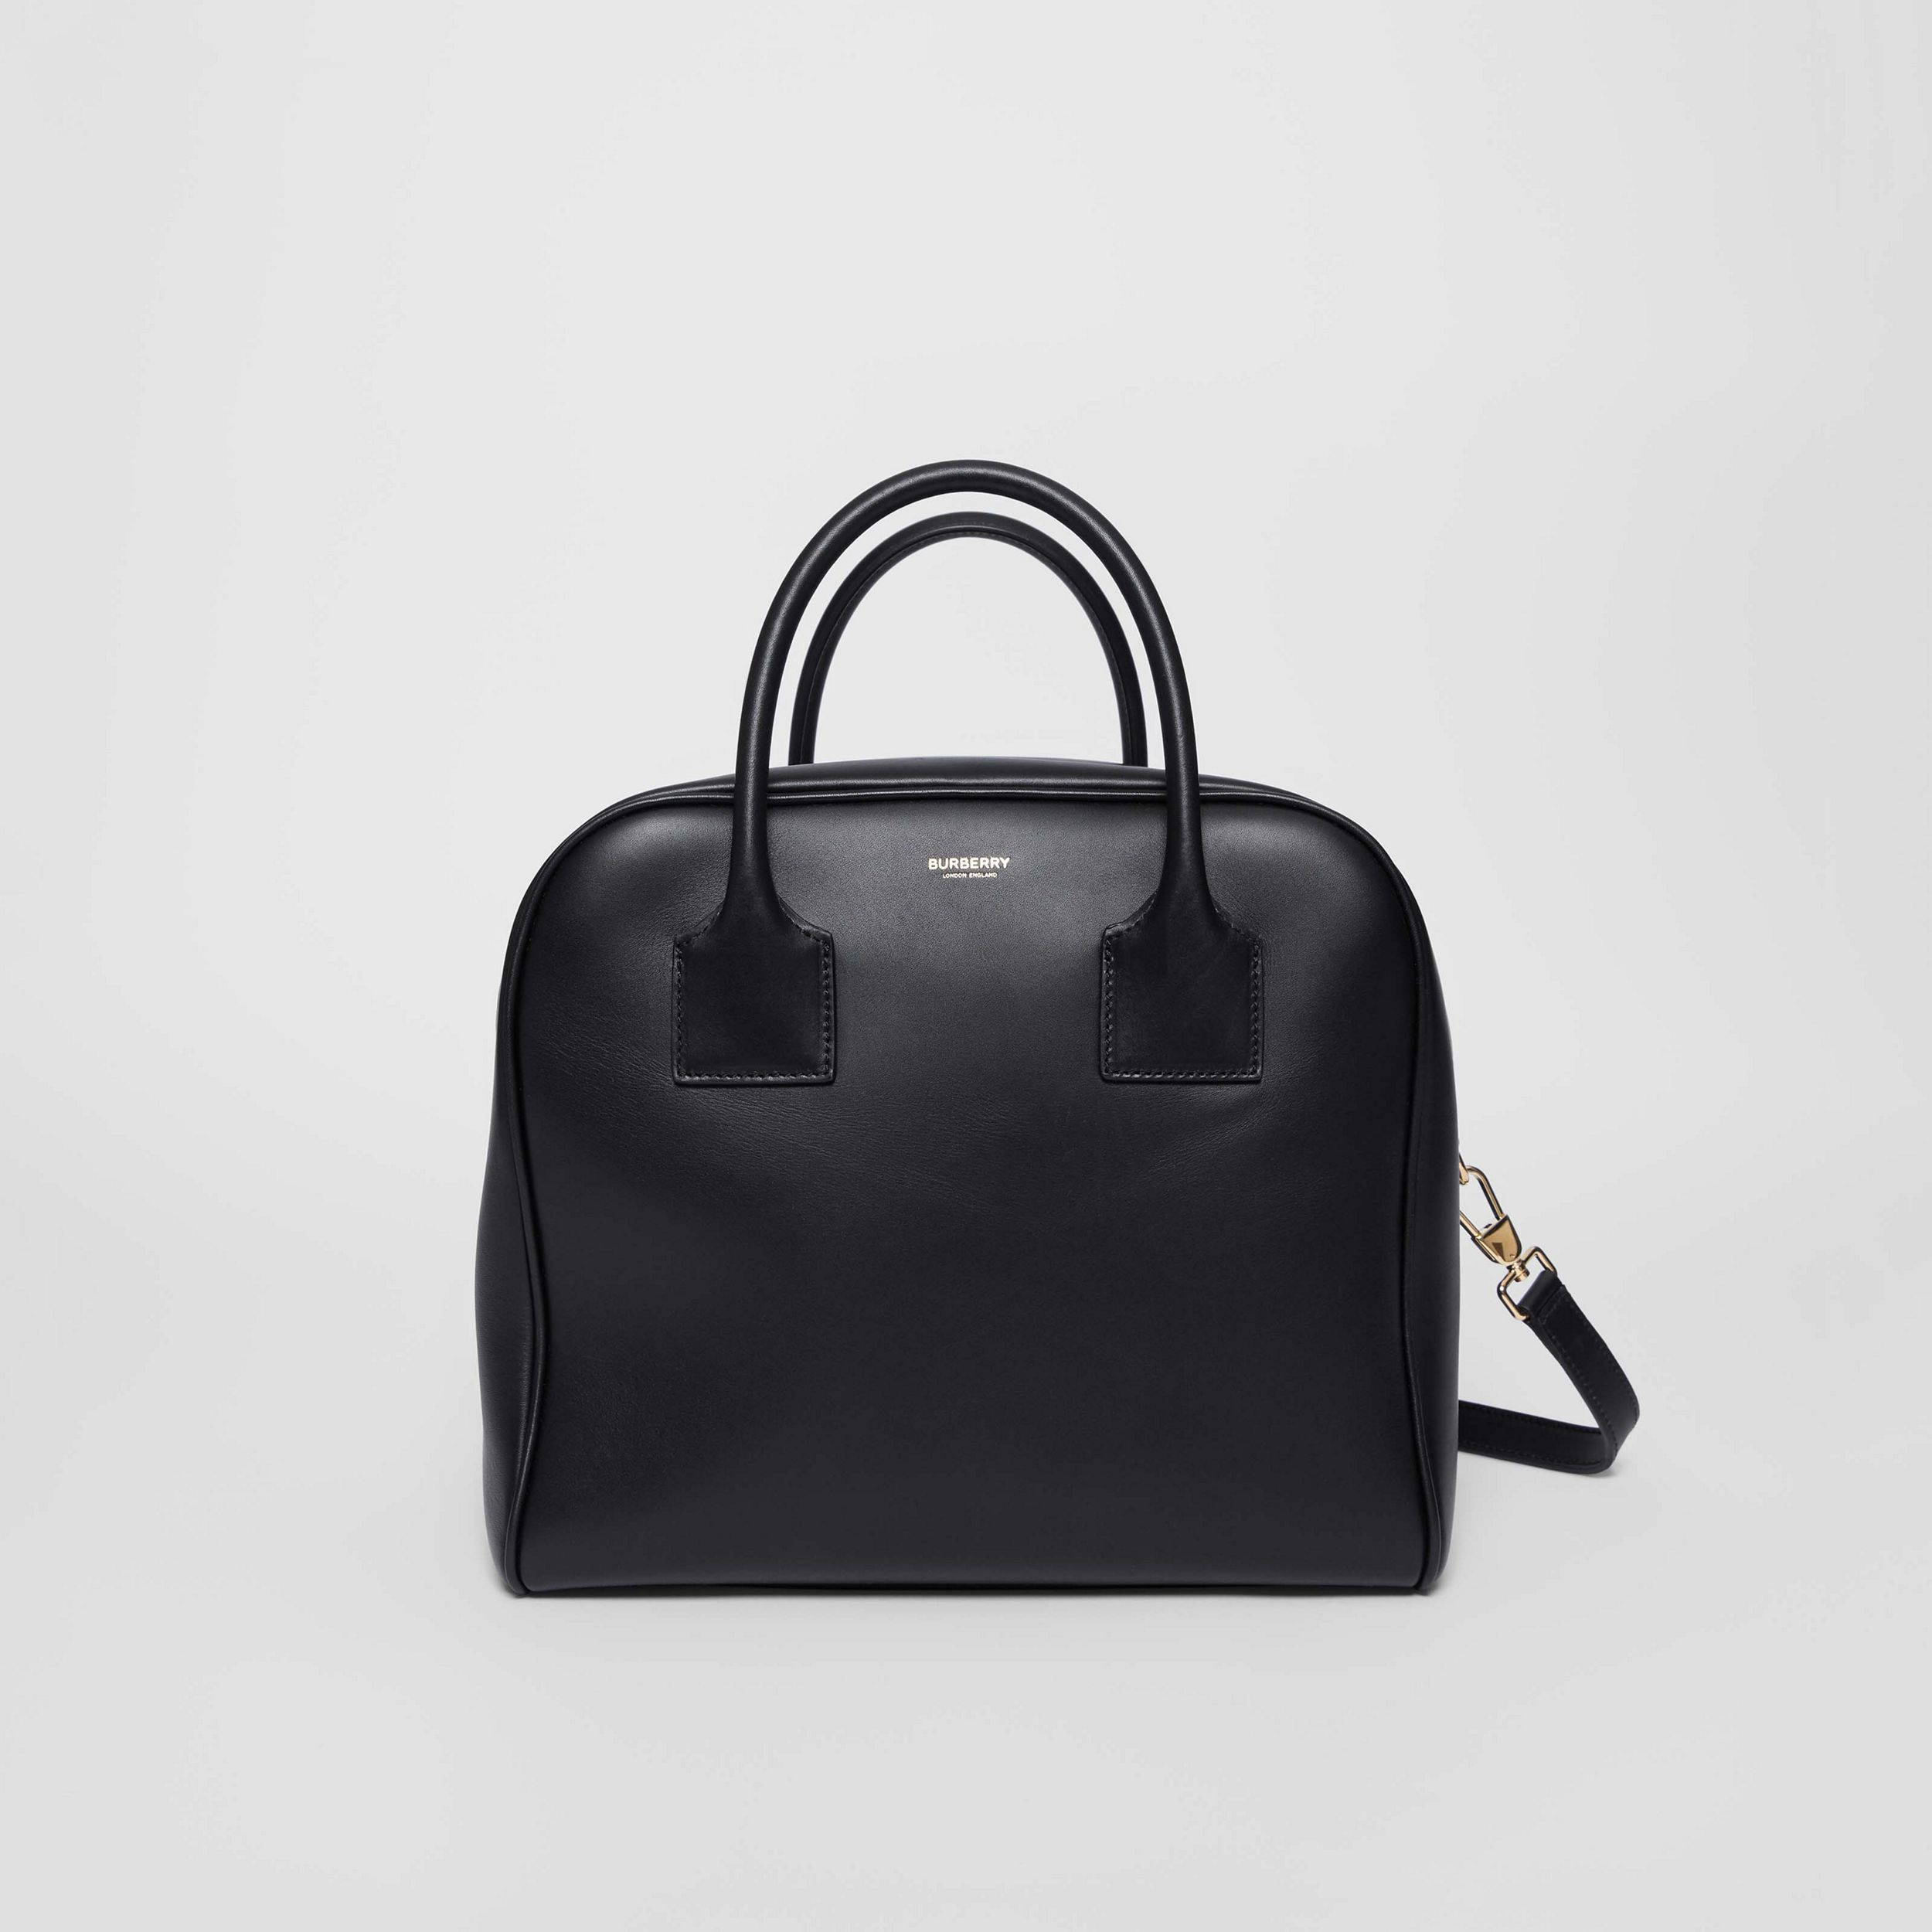 Medium Leather Cube Bag in Black - Women | Burberry United States - 1